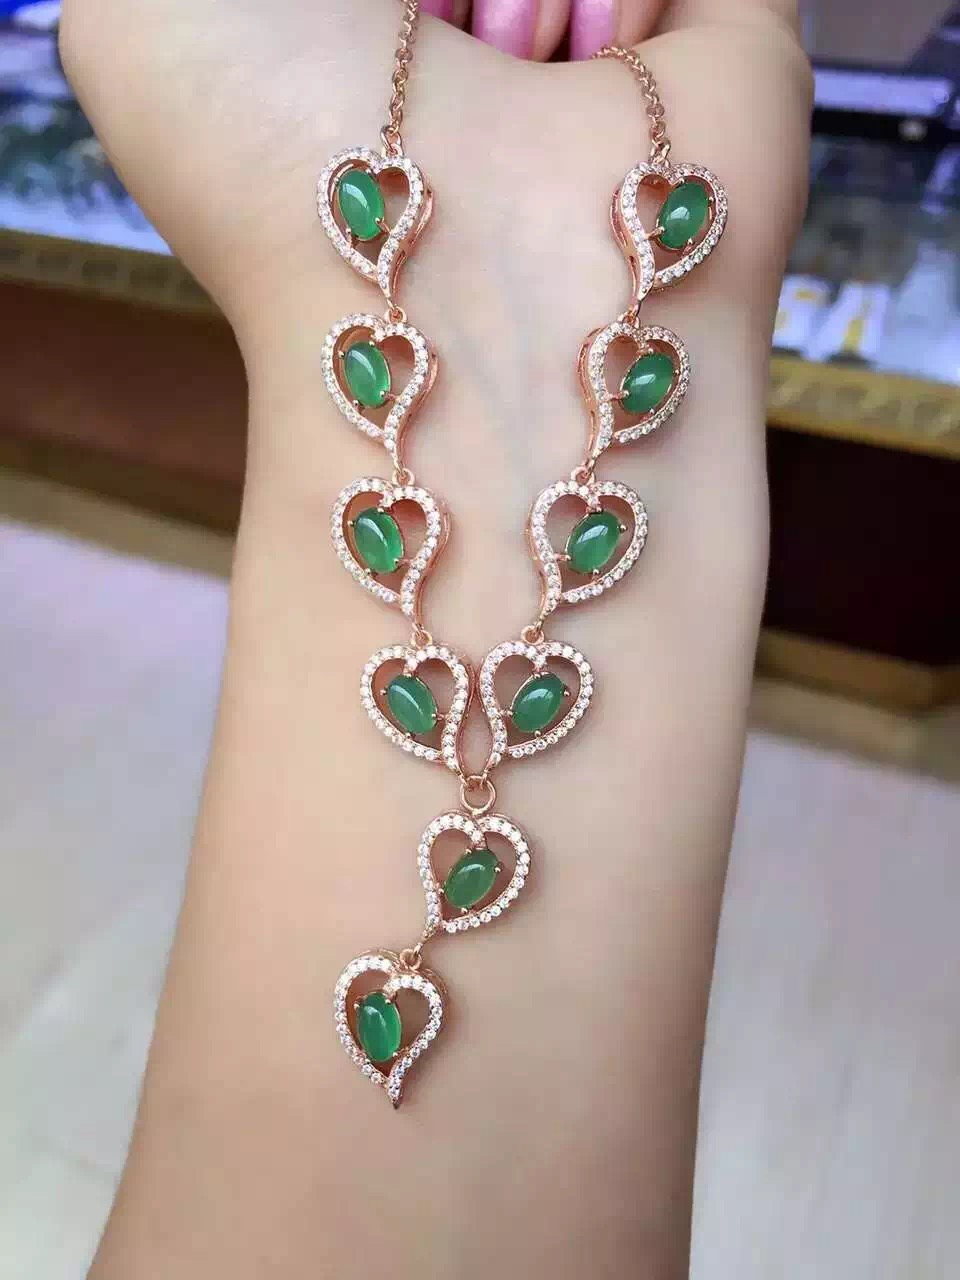 Natural green chalcedony Necklace Natural gemstone Pendant Necklace 925 sliver women Luxury trendy Heart Peach women Jewelry trendy solid color heart pendant necklace for women